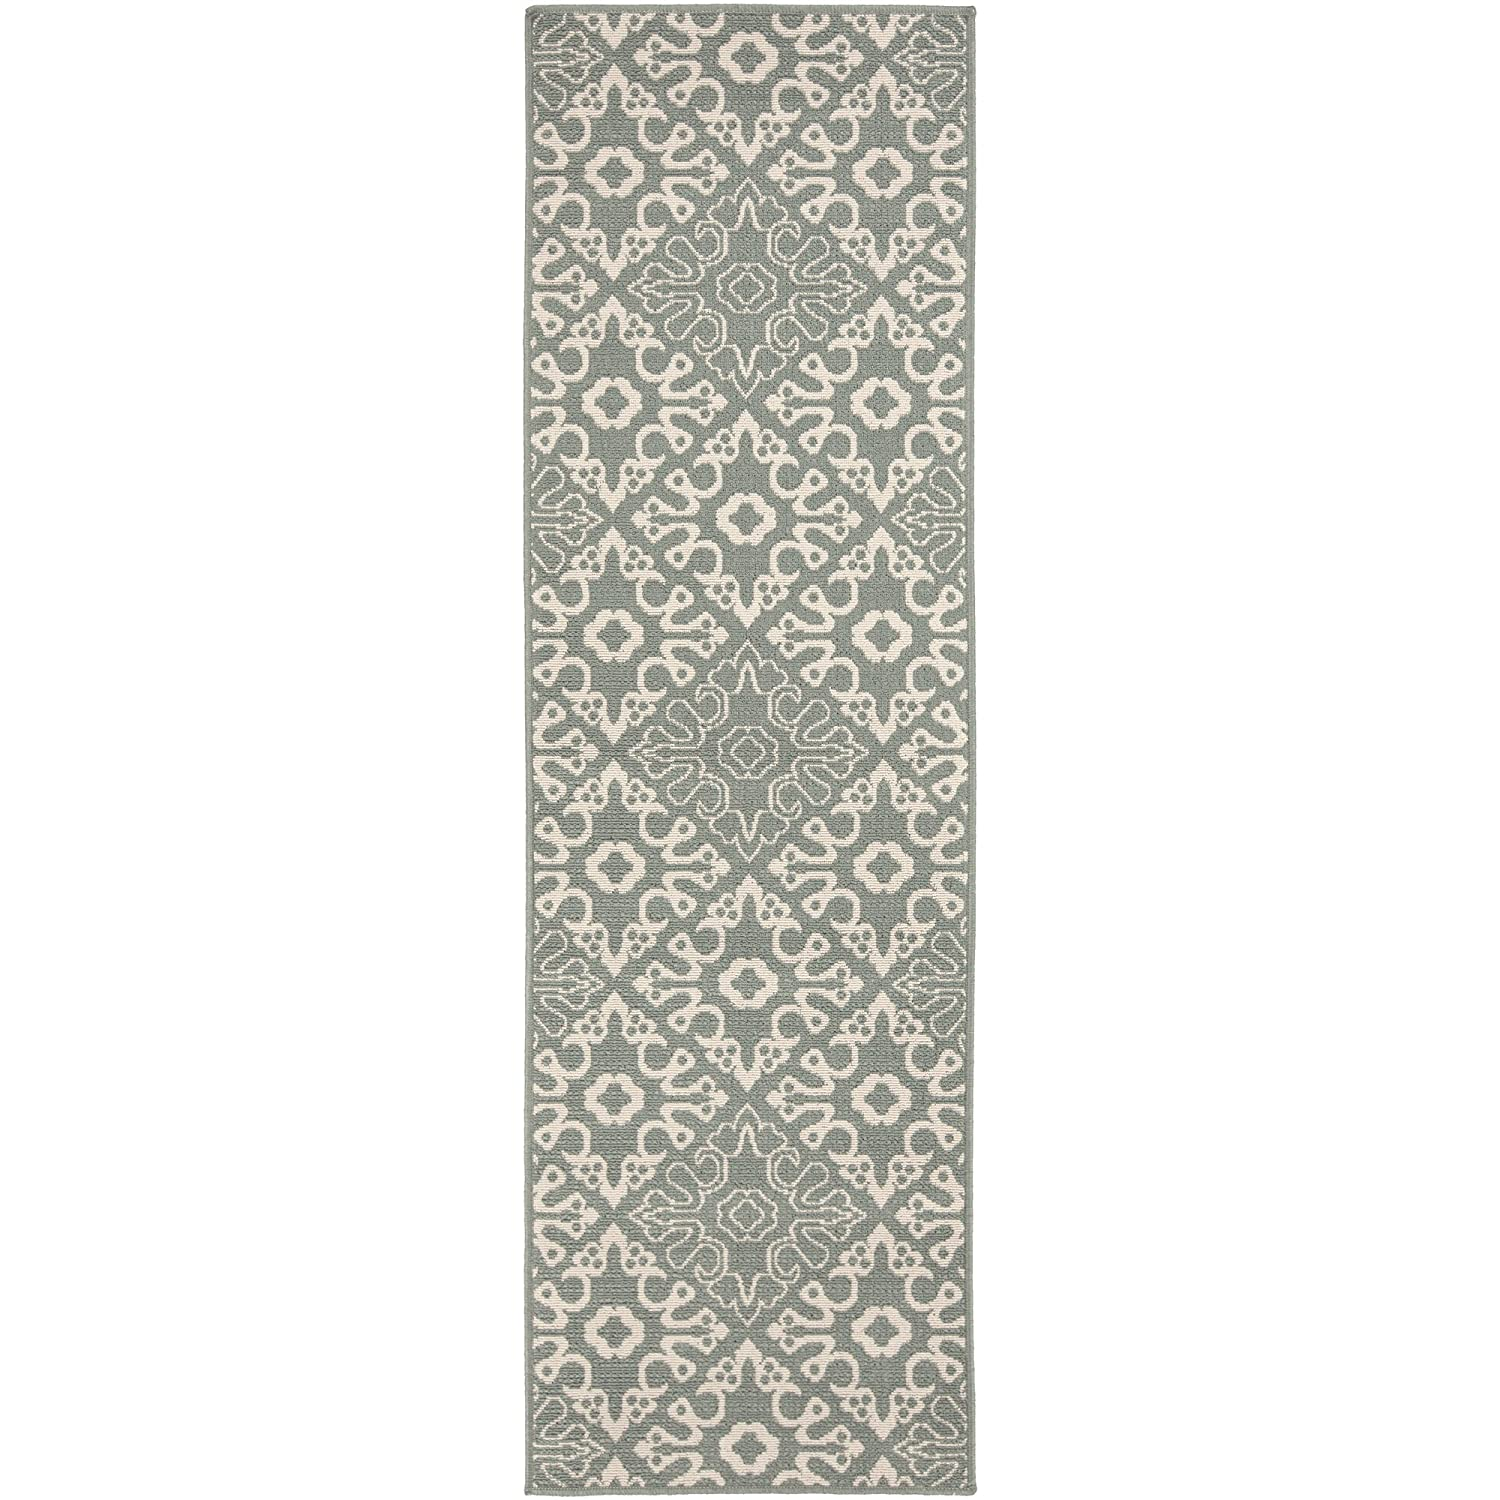 Surya Machine Made Traditional Area Rug, 6-Feet by 9-Feet, Taupe/Beige